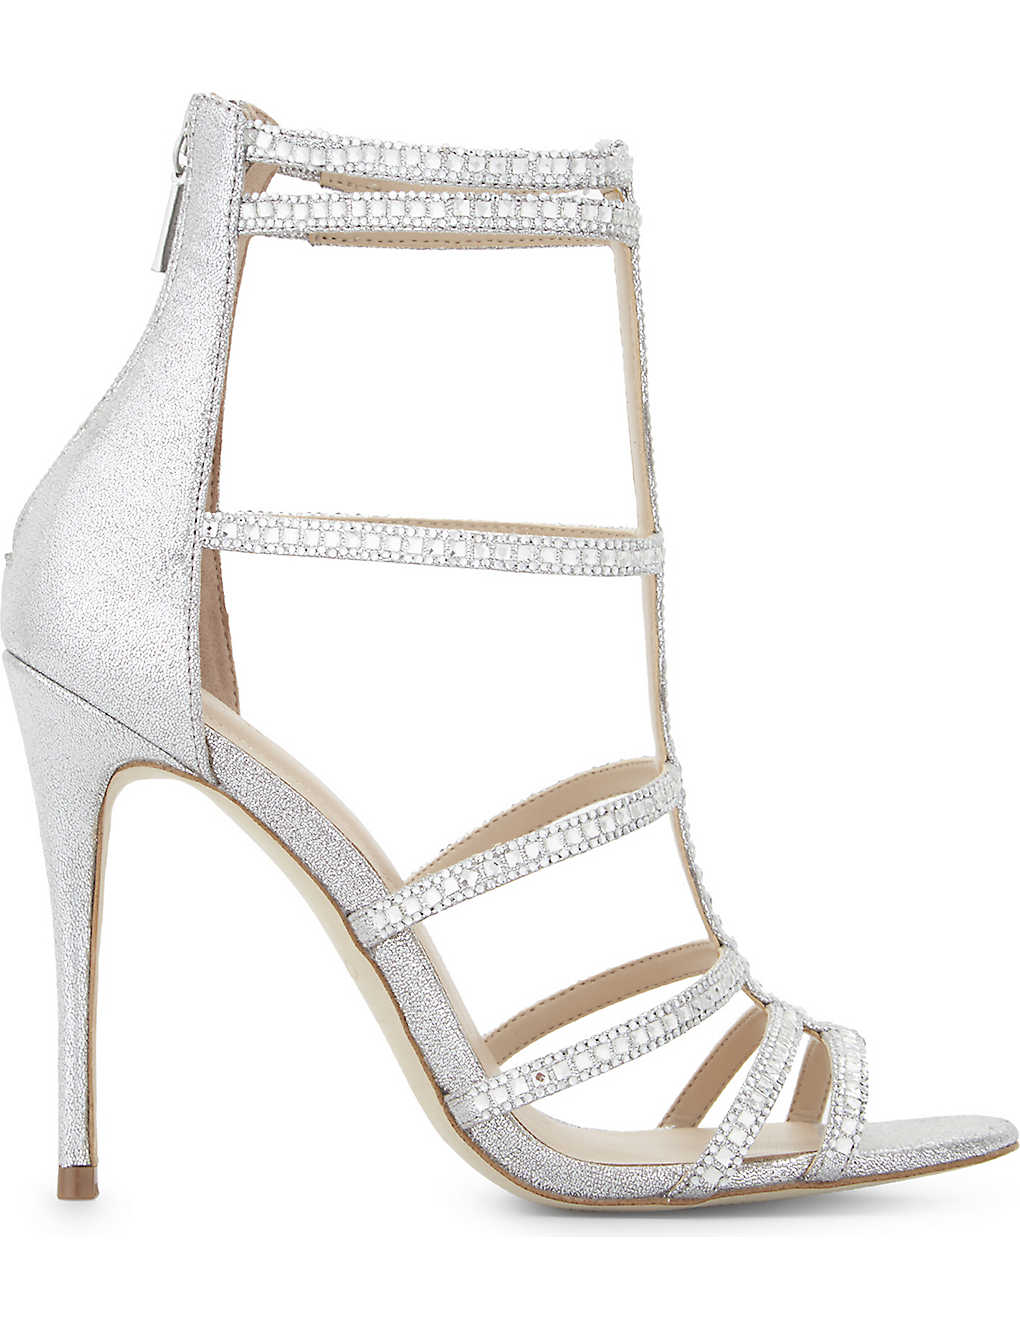 12f4e2a5ec3c ALDO - Mally caged heeled sandals